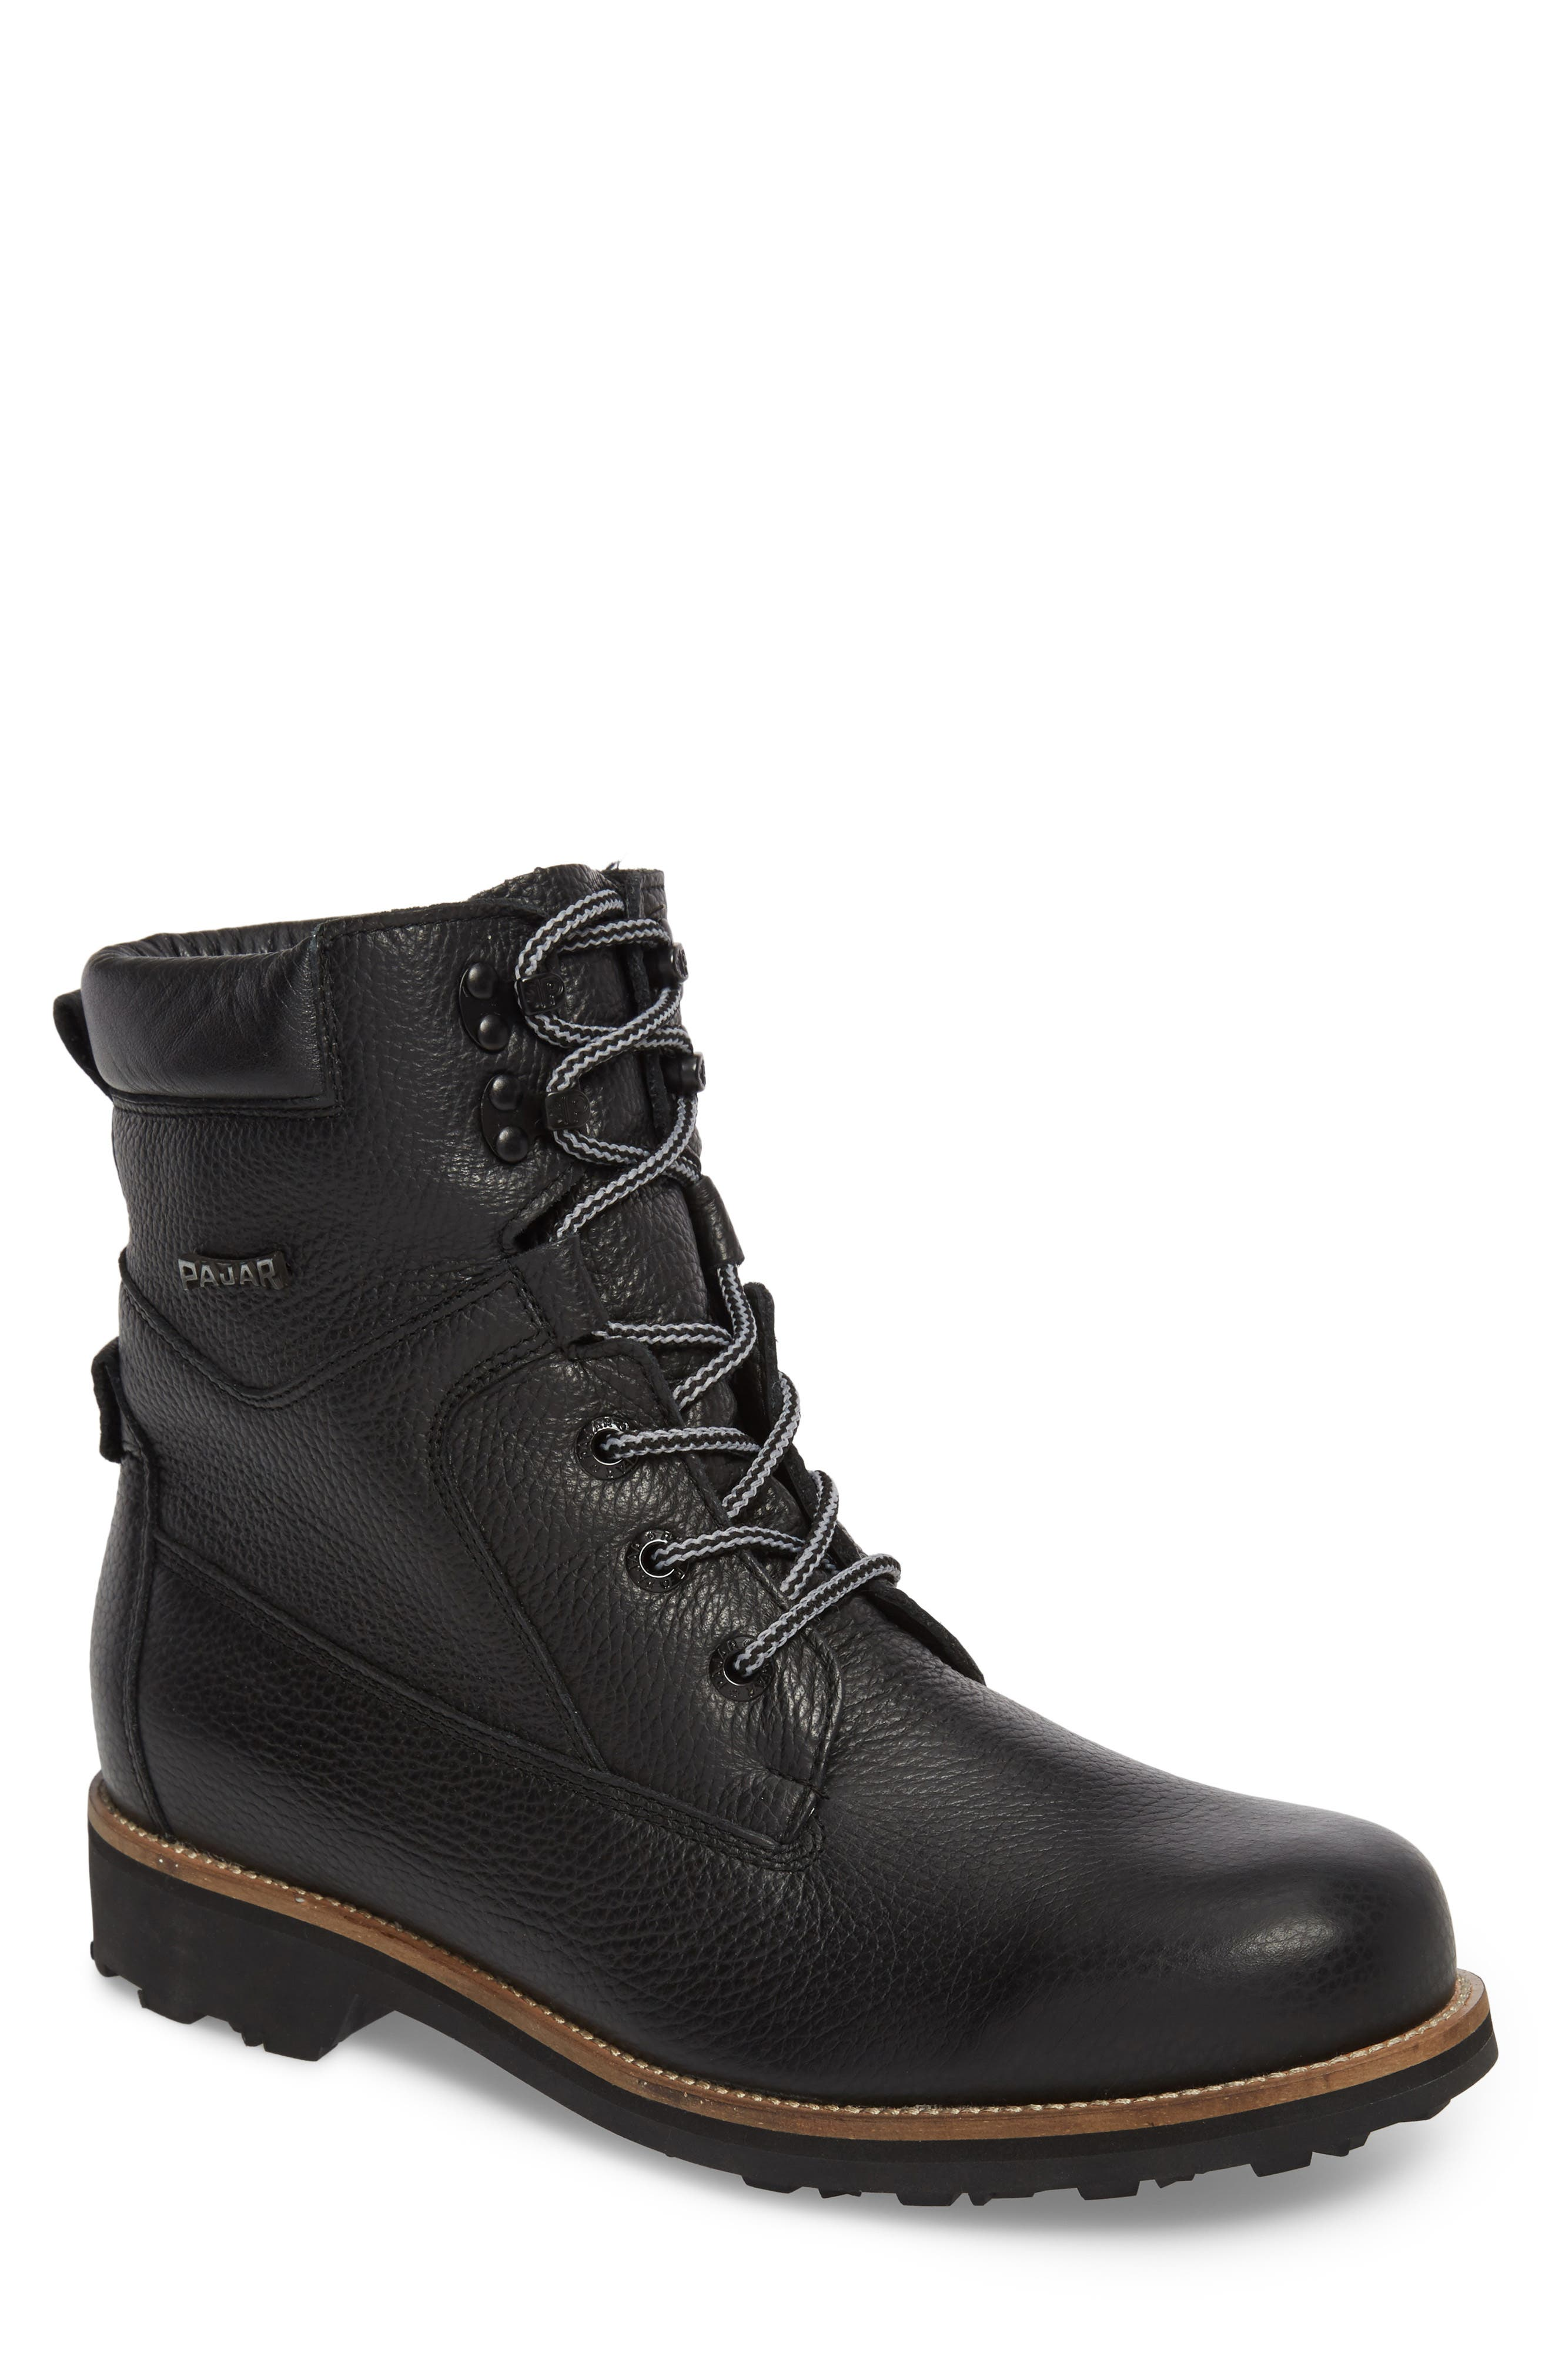 PAJAR David Plain Toe Waterproof Boot, Main, color, BLACK LEATHER